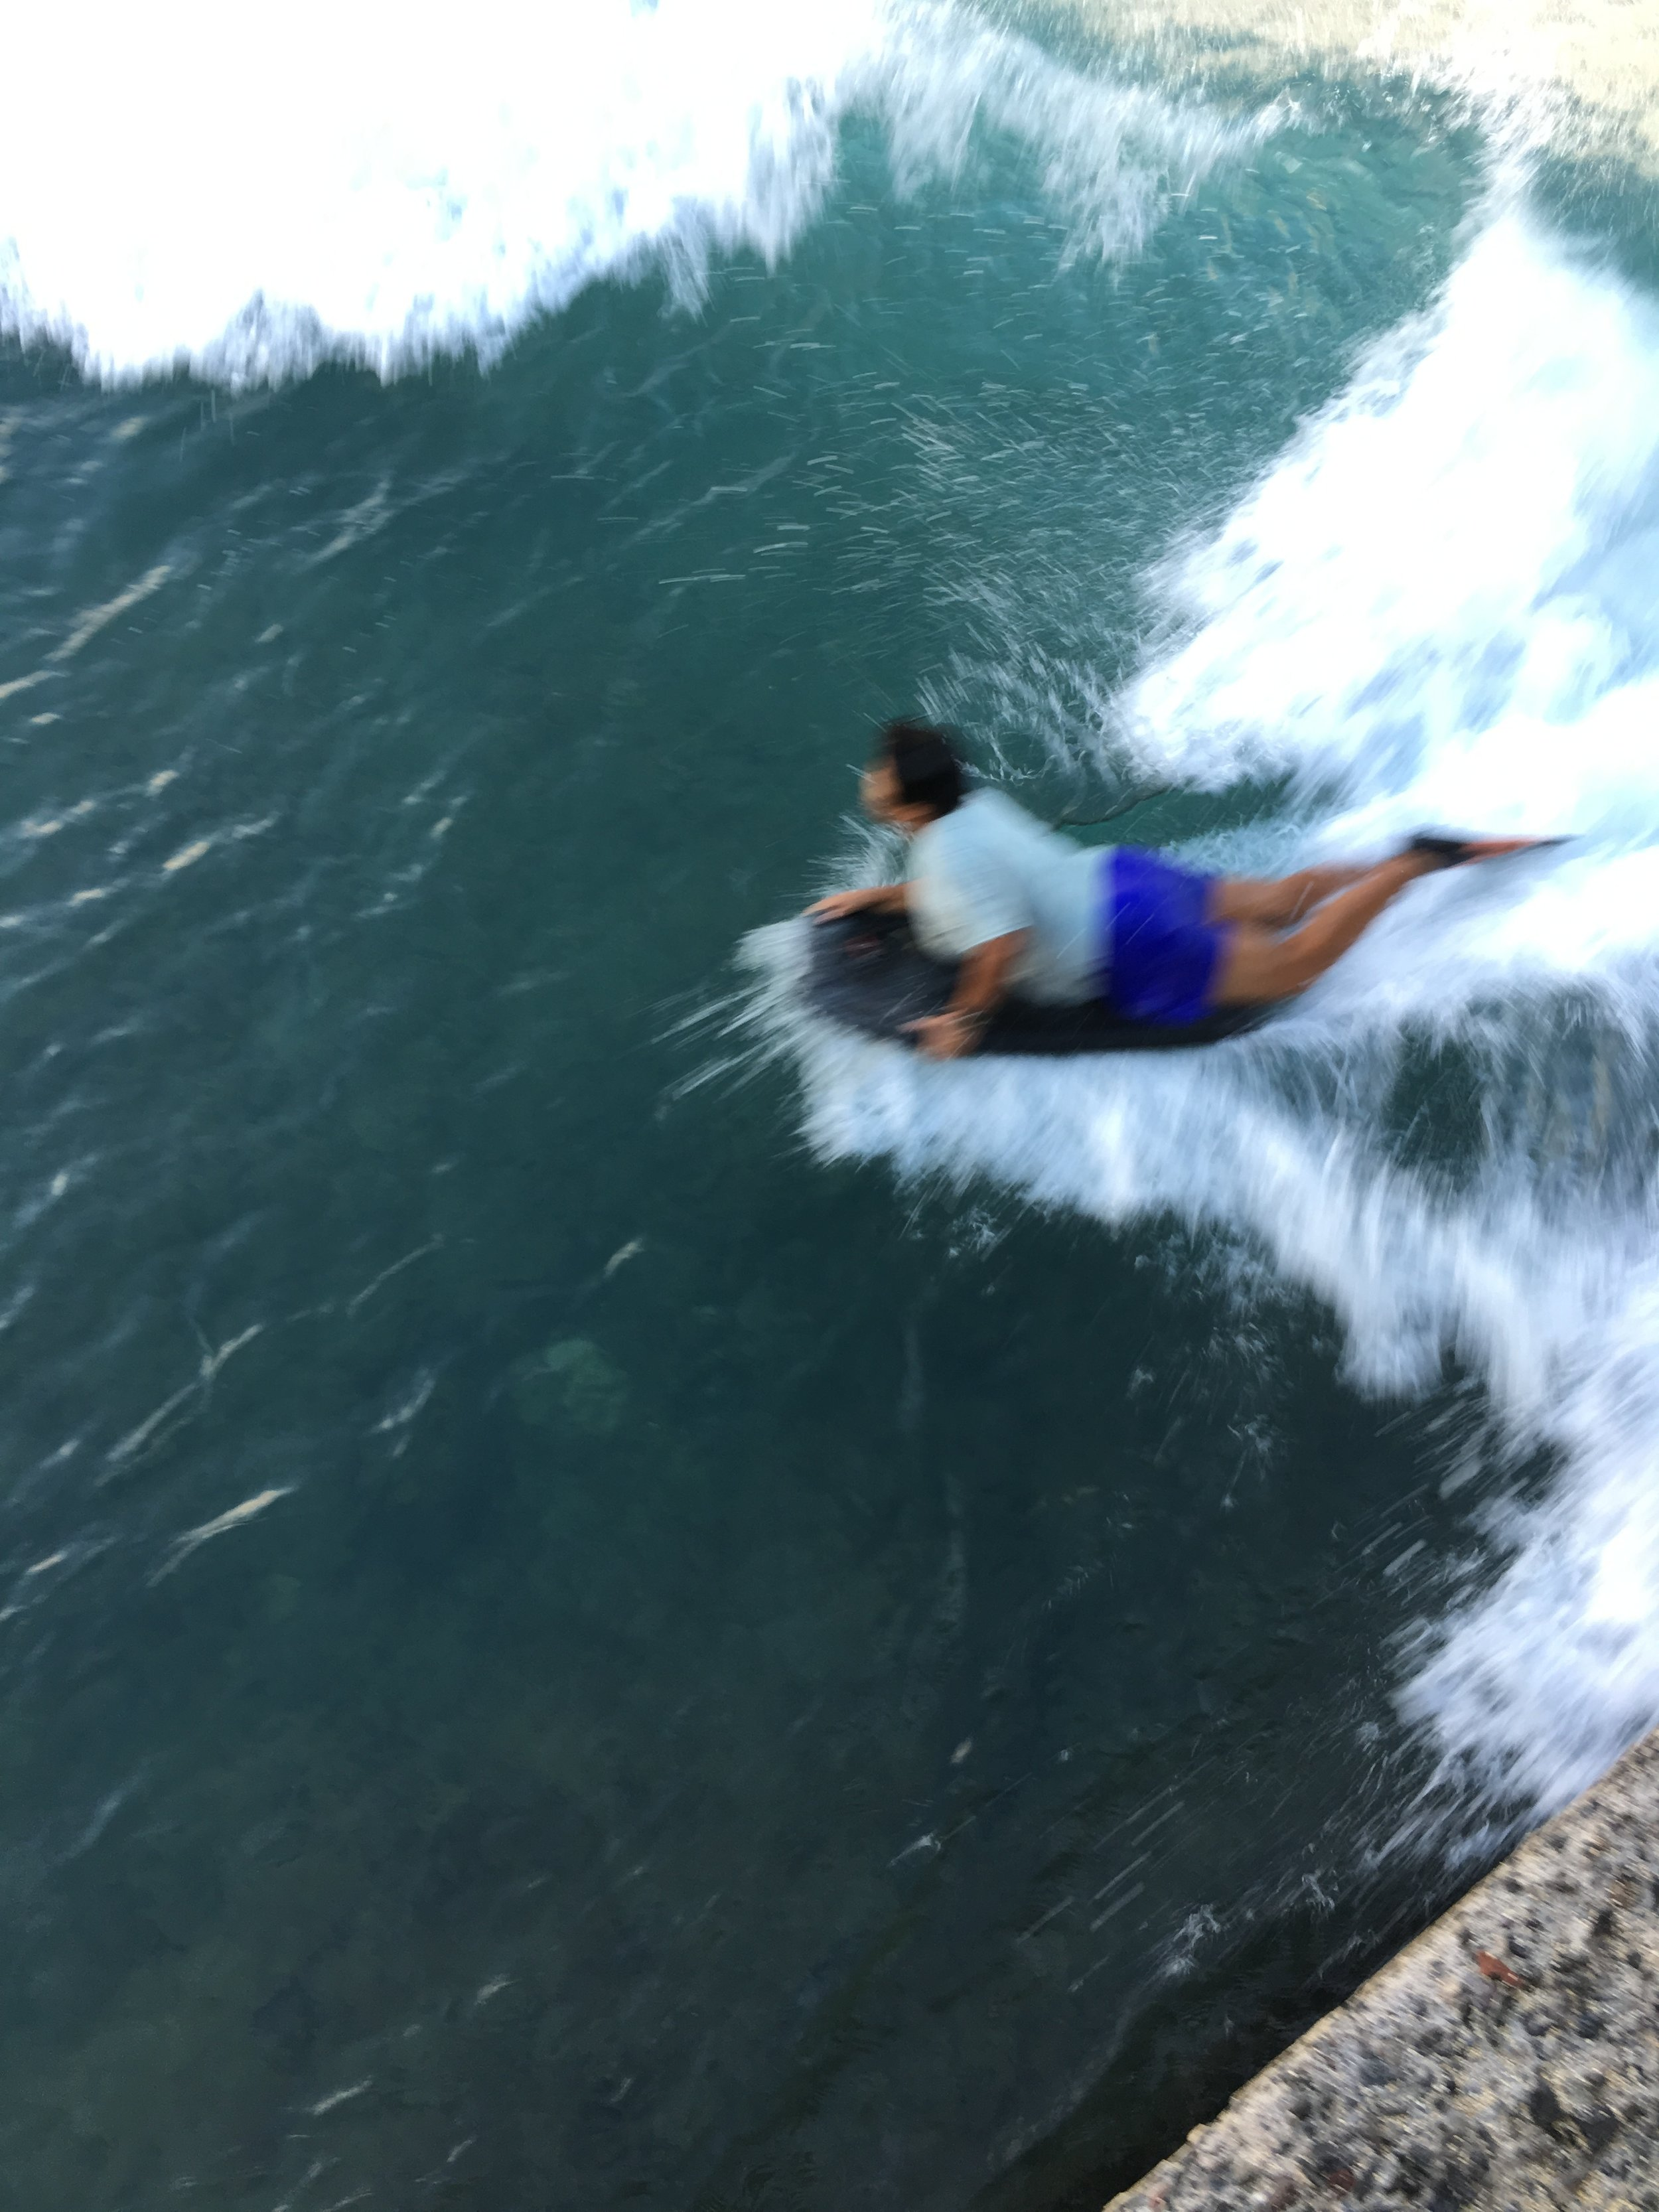 Keiki (kid) riding his boogie board along the Diamond Head side of Walls.